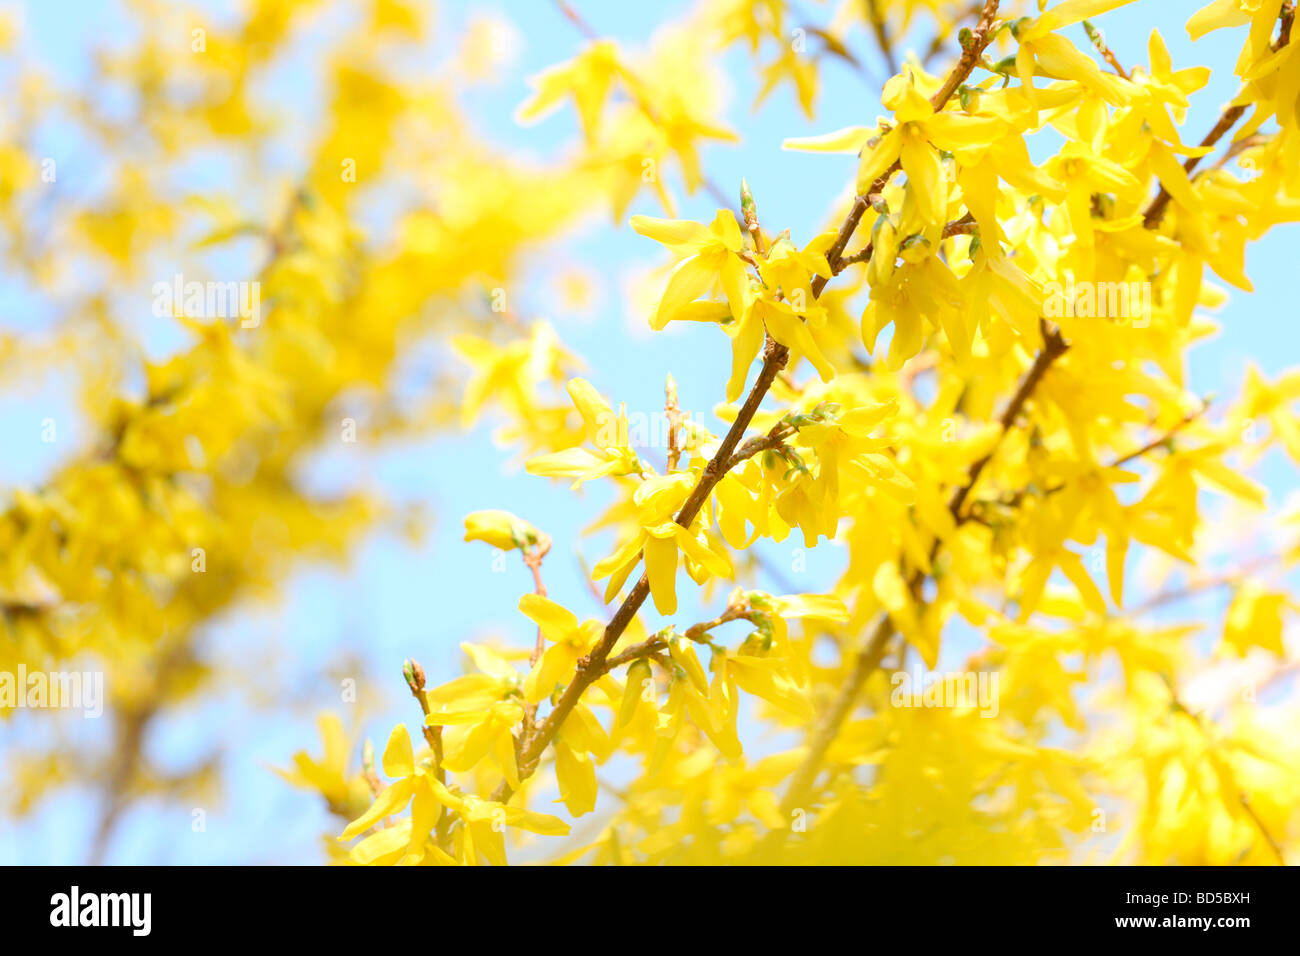 charming yellow forsythia stems in a contemporary style fine art photography Jane Ann Butler Photography JABP523 Stock Photo